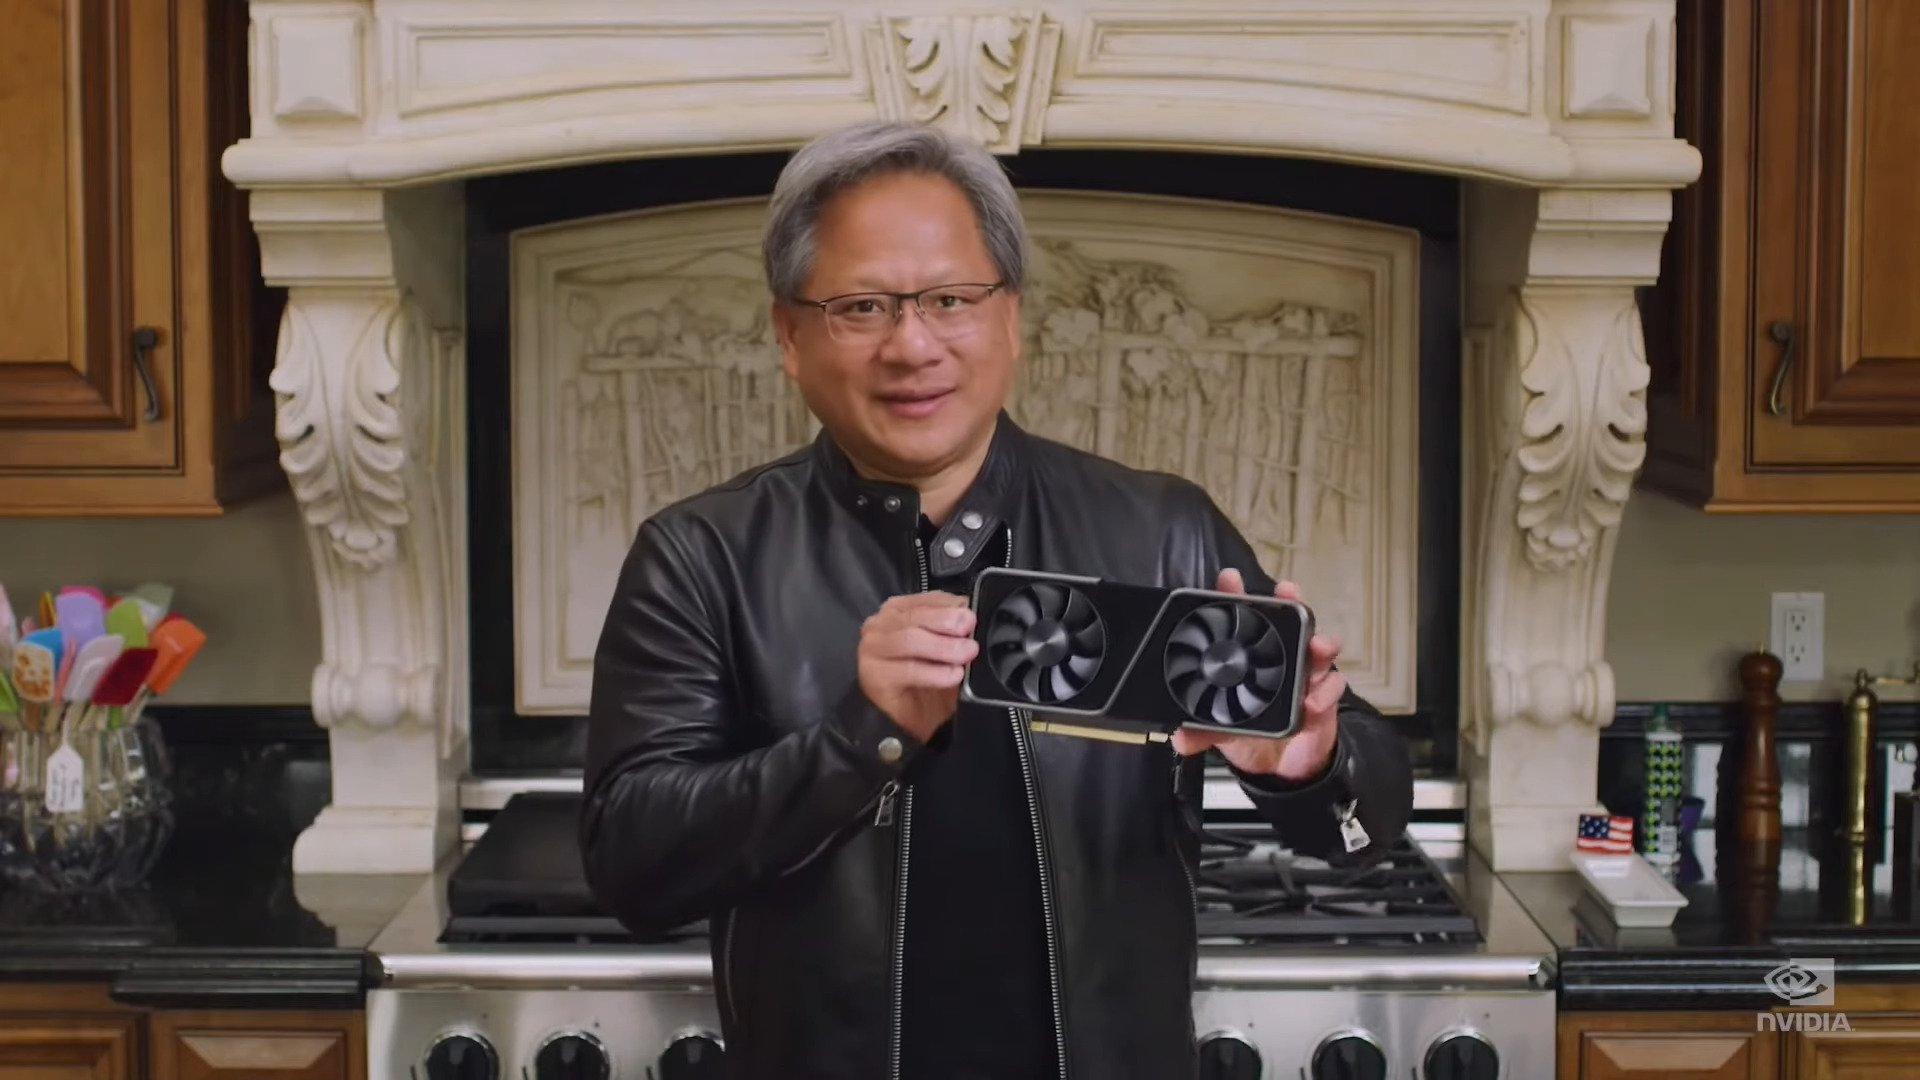 Nvidia's GeForce RTX 3070 GPU Sells Out Within Minutes, Mirroring RTX 3080's Terrible Launch